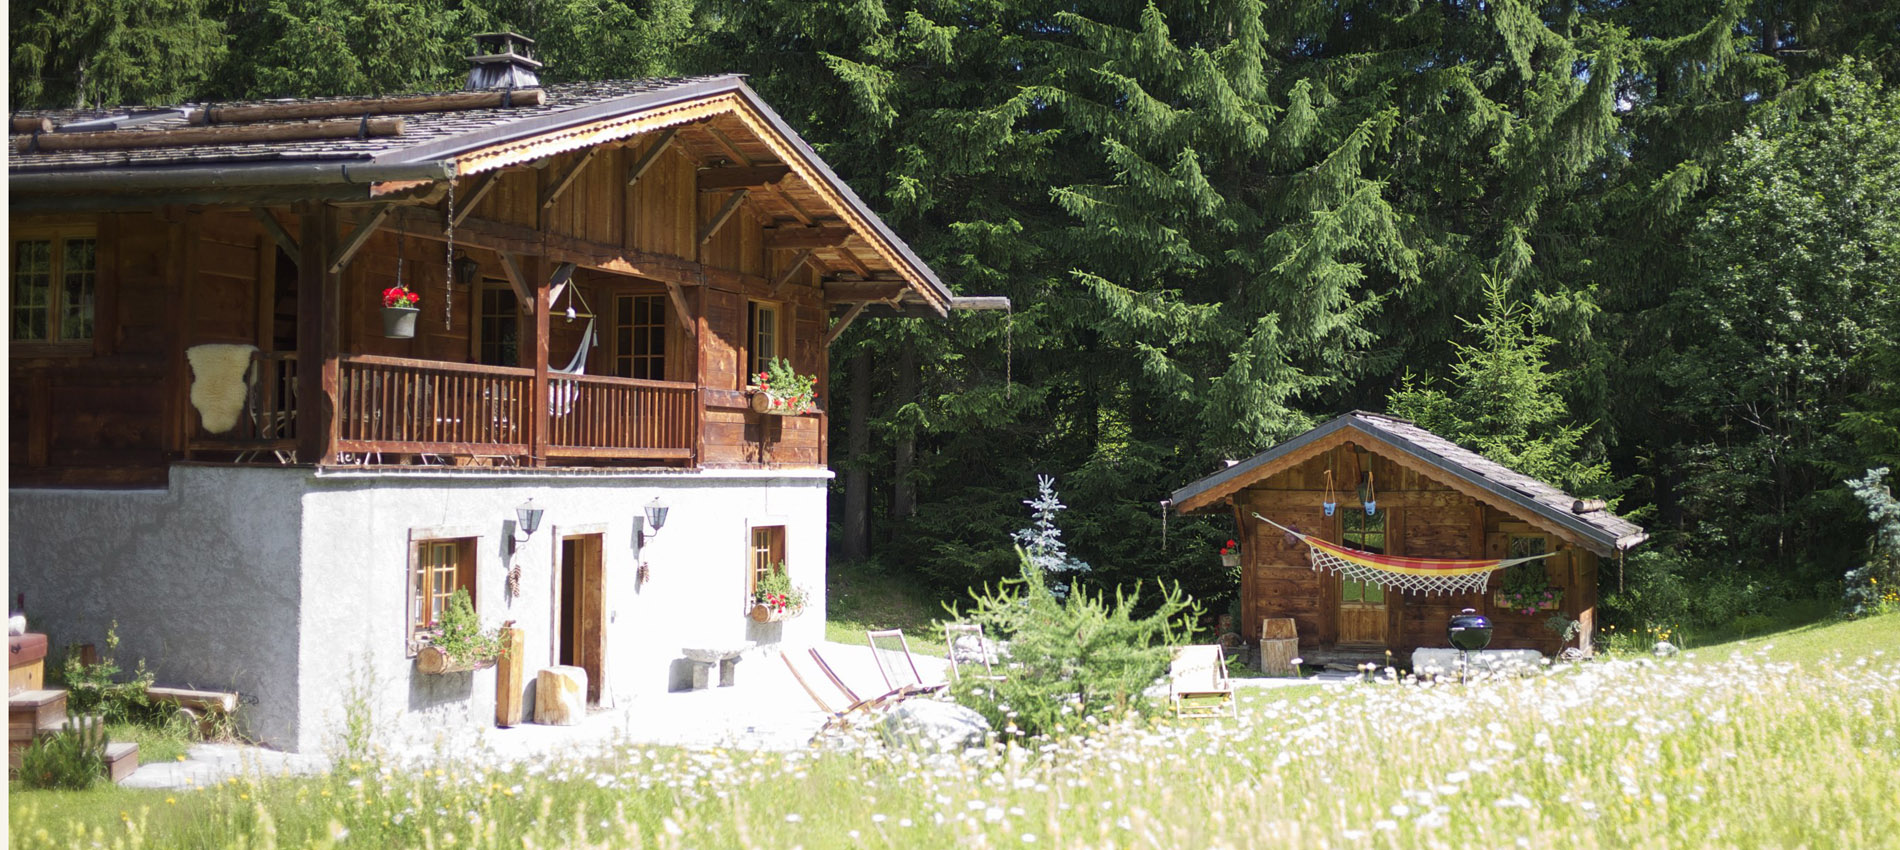 Chamonix Chalet in Summer